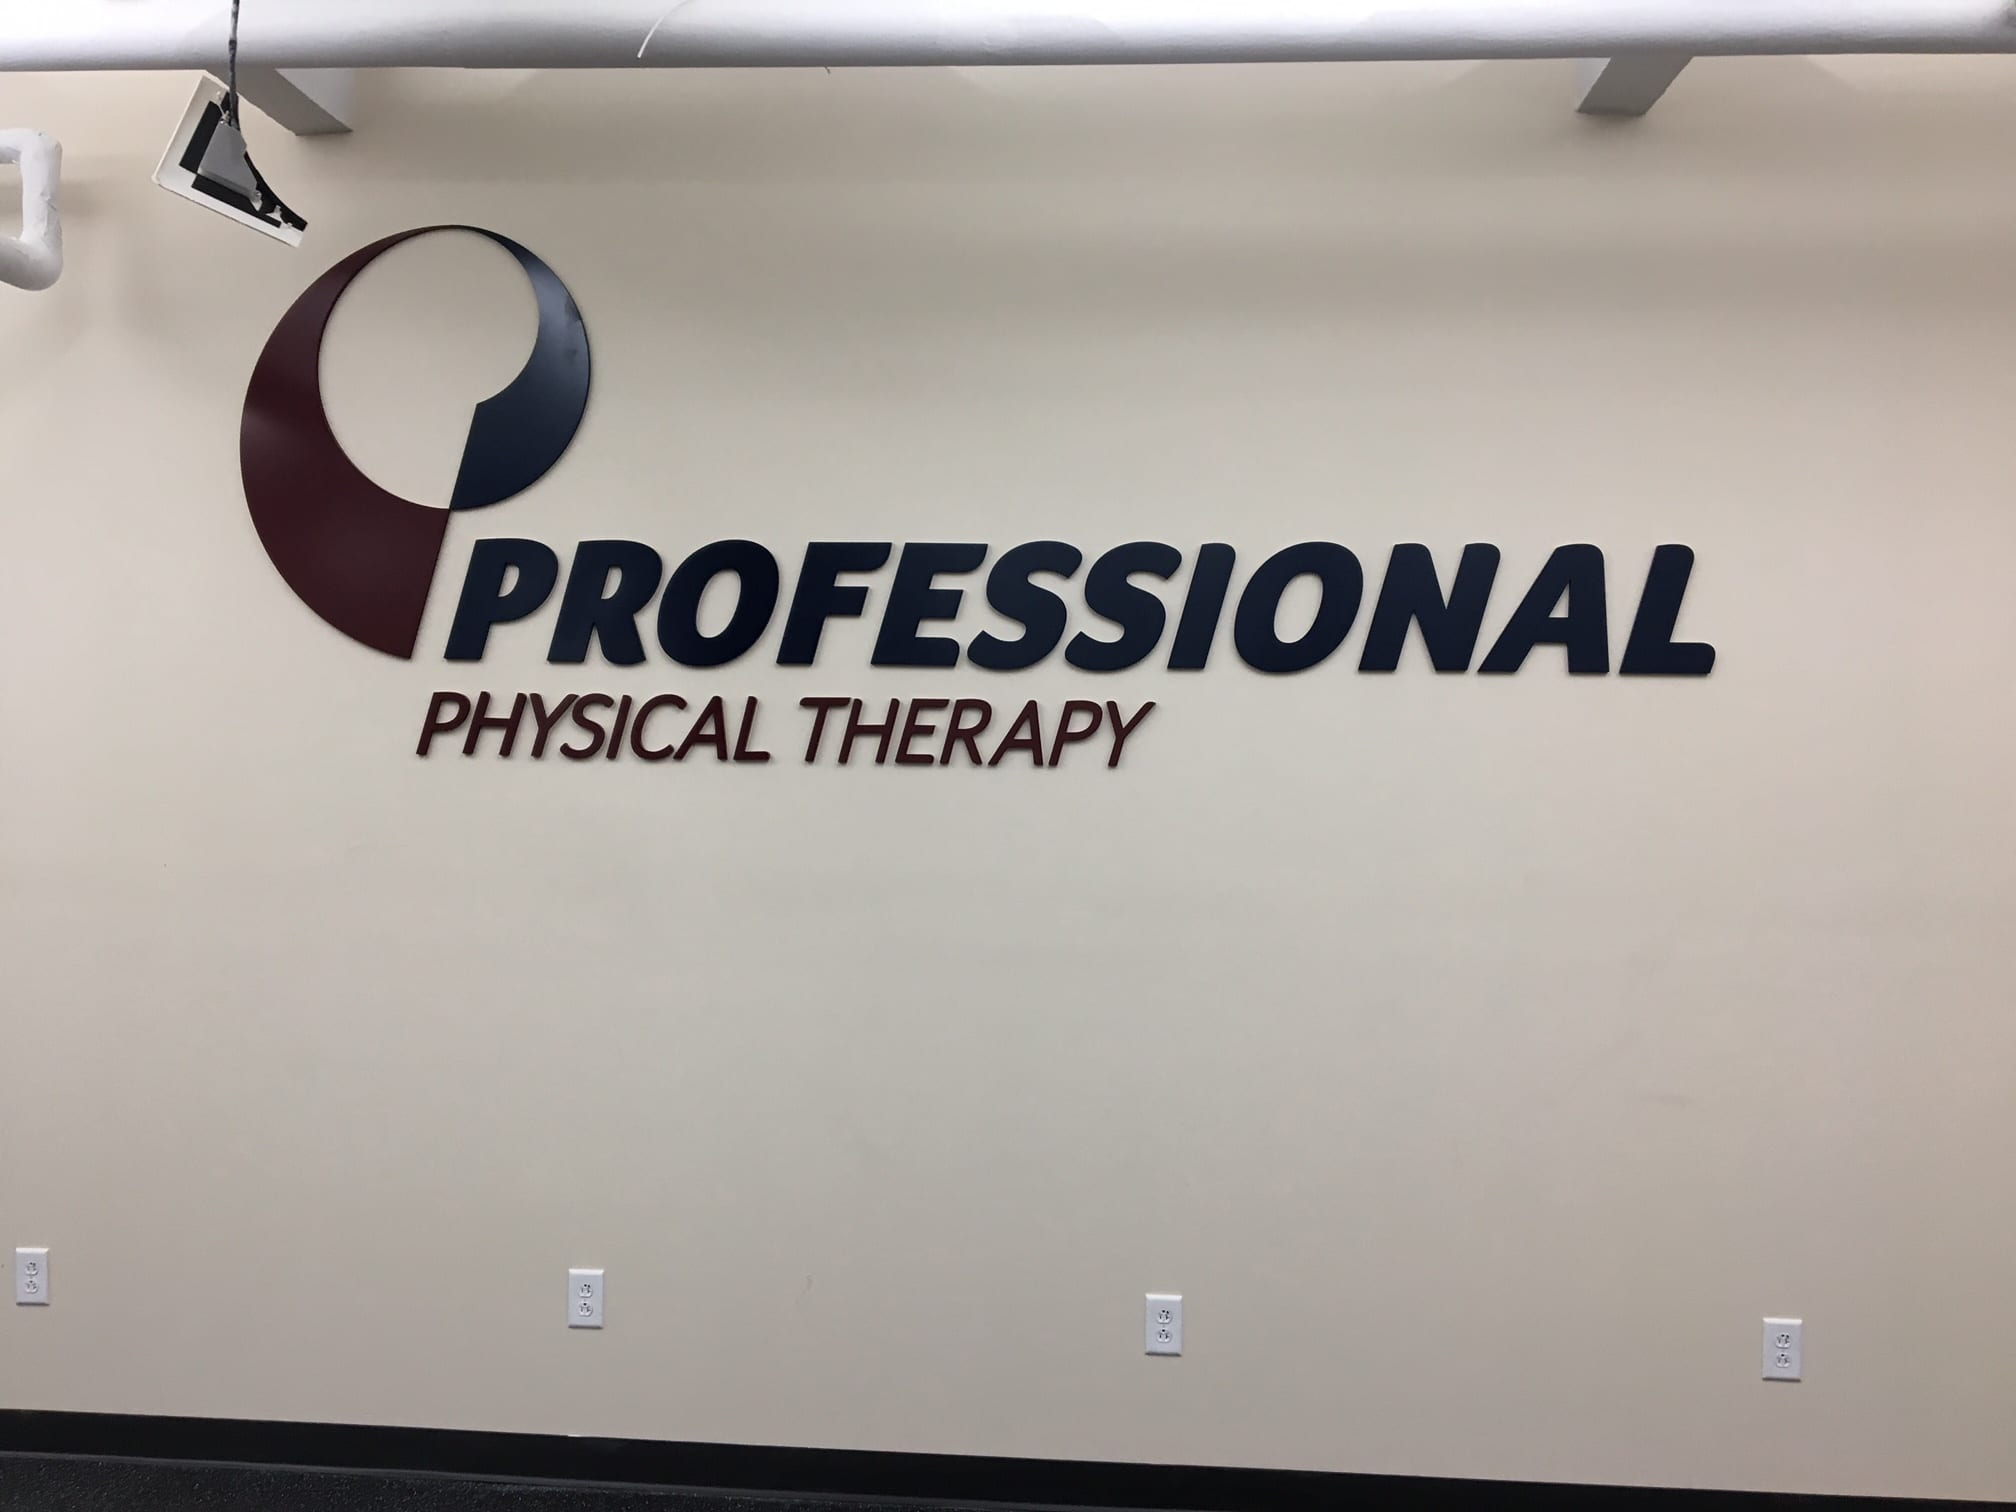 An image of our Professional Physical Therapy sign in our clinic in lower Manhattan, New York City, at East Village.